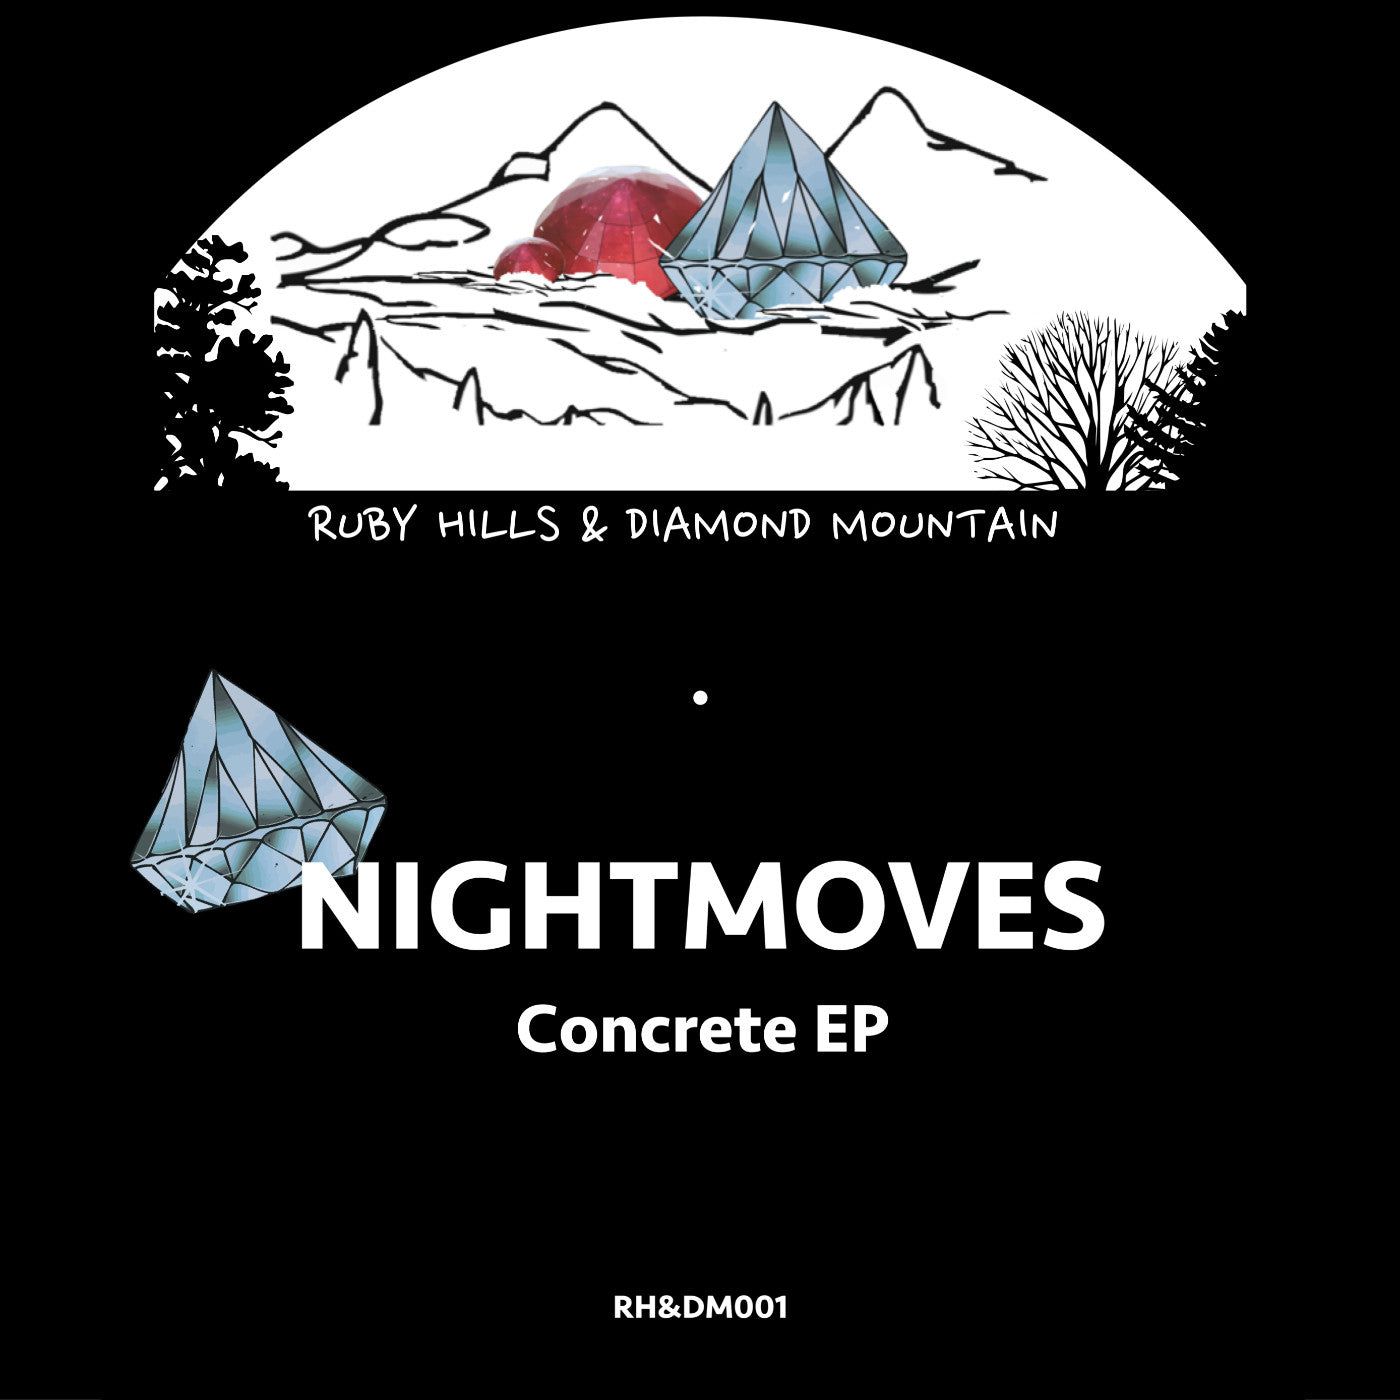 NightMoves - Concrete EP , Vinyl - Ruby Hill's and Diamond Mountain, Unearthed Sounds - 1